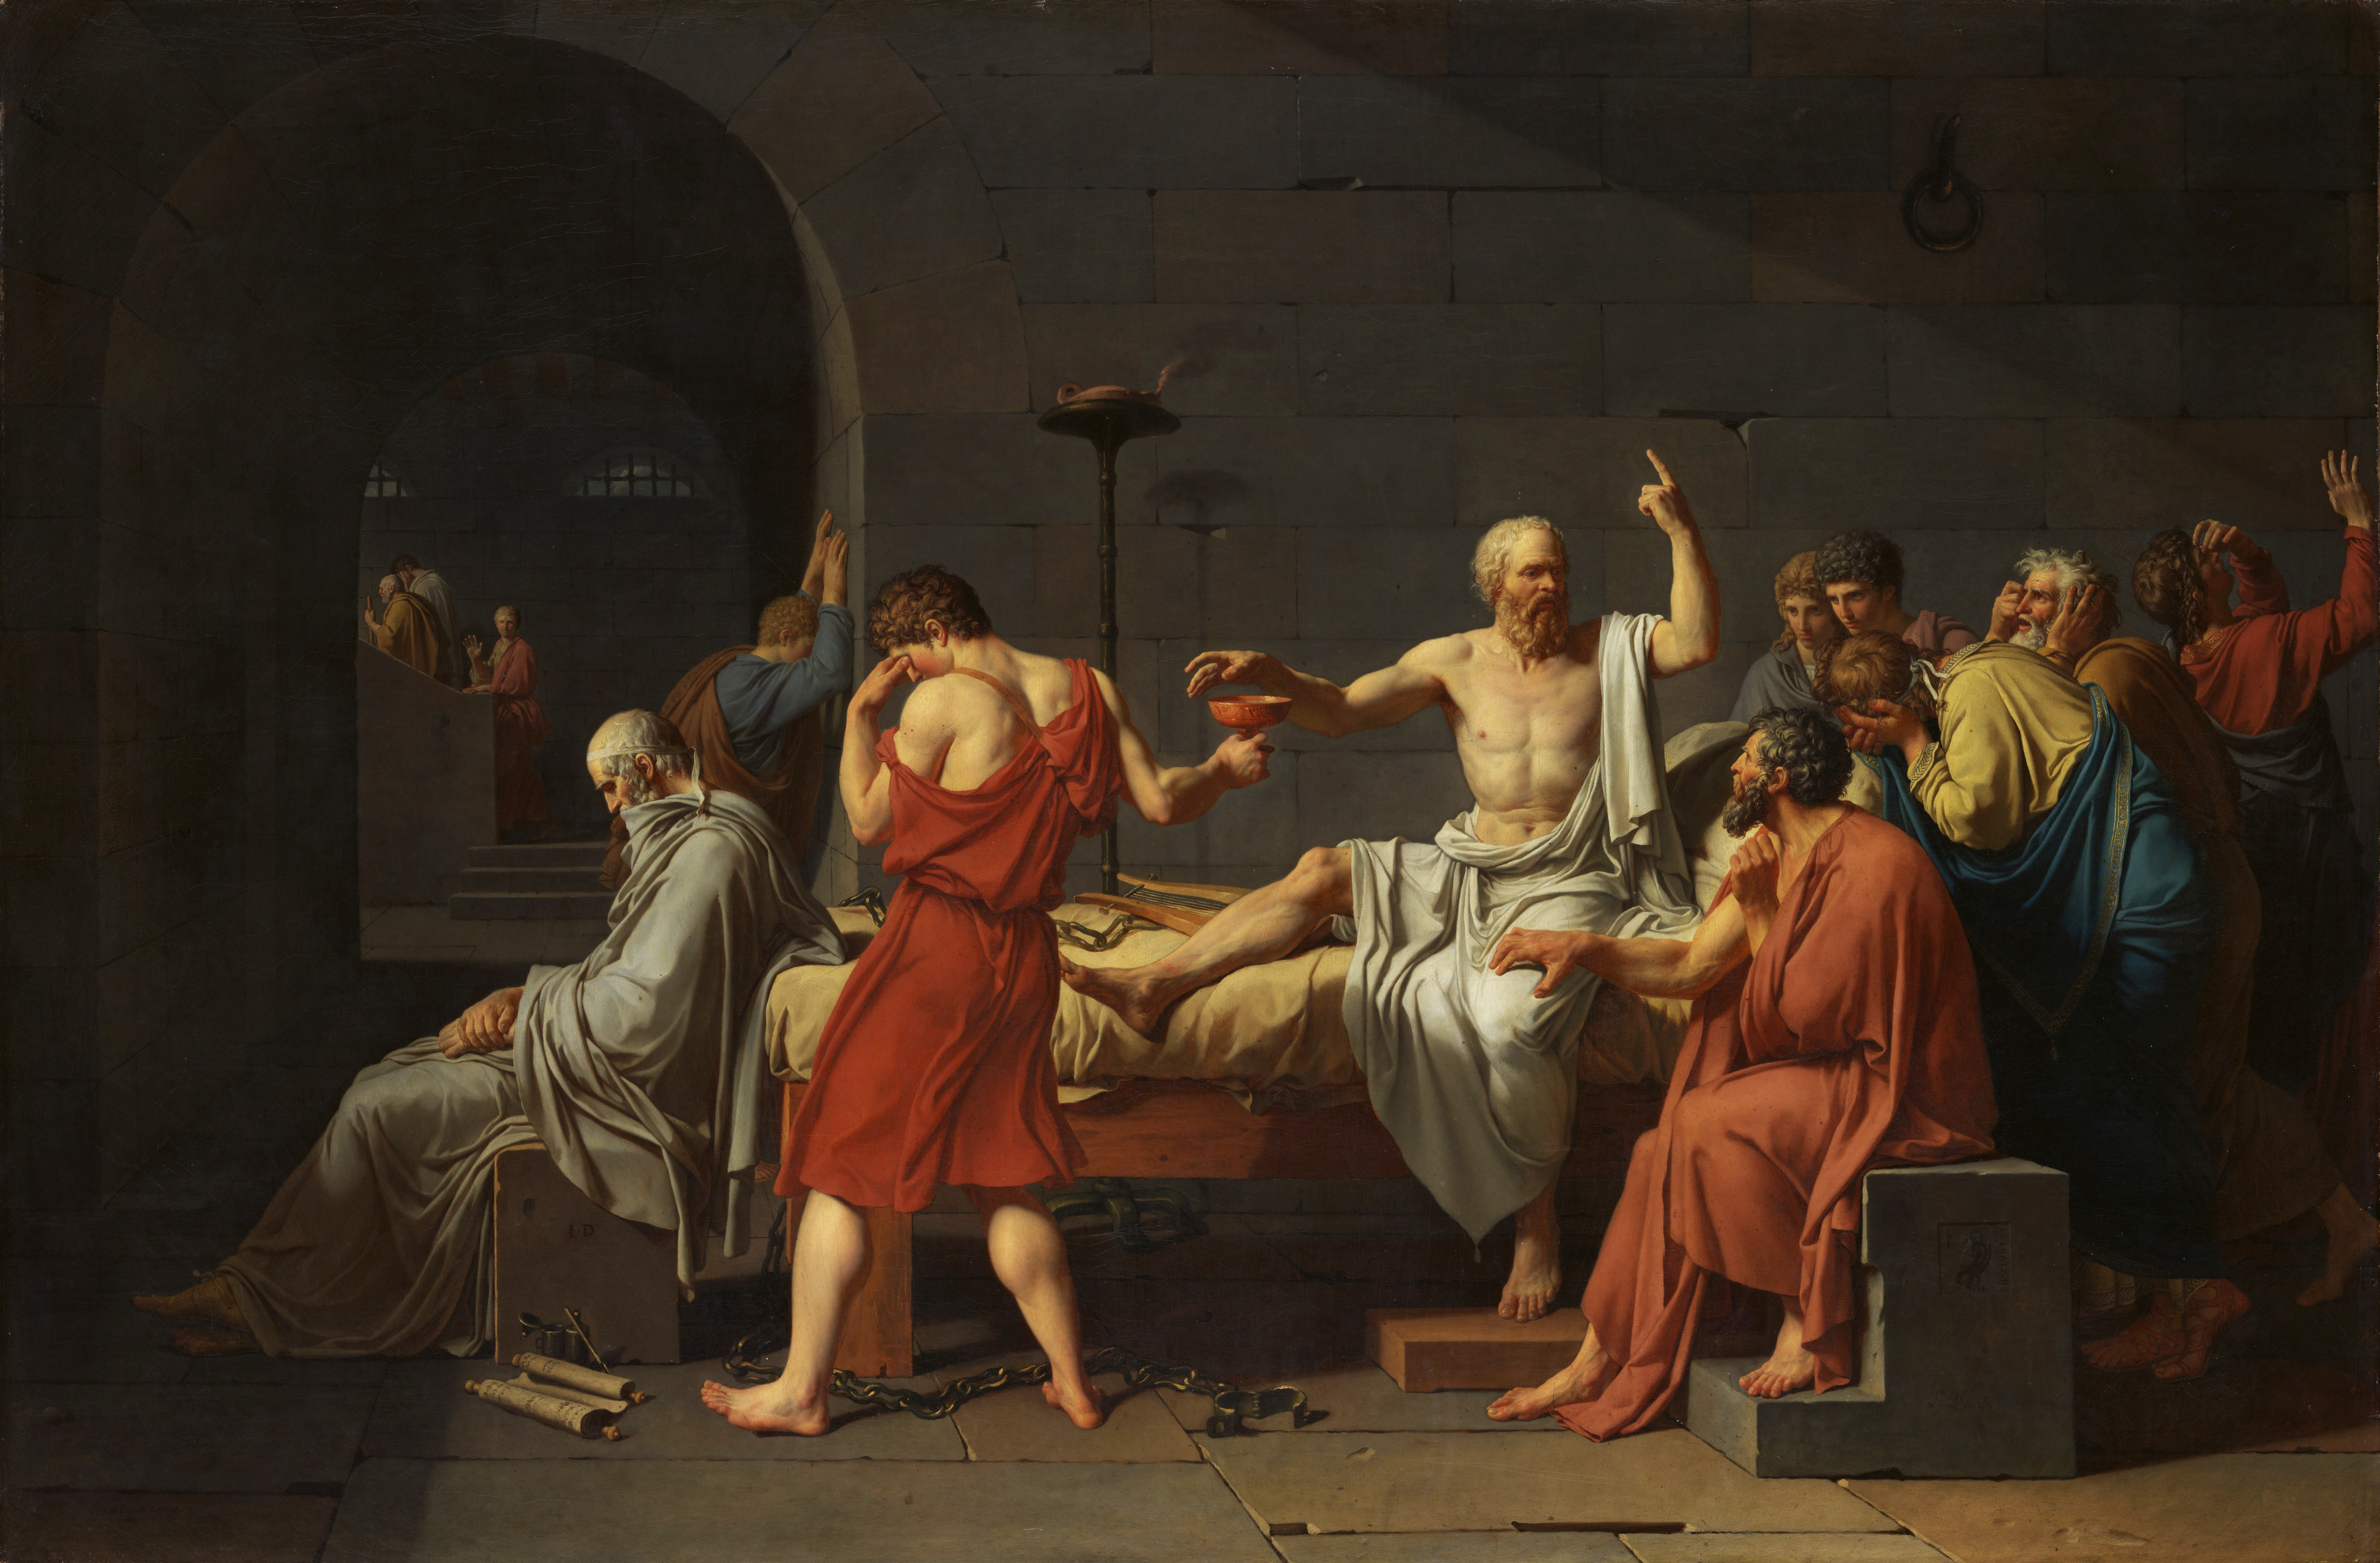 http://commons.wikipedia.org/wiki/File:David_-_The_Death_of_Socrates.jpg